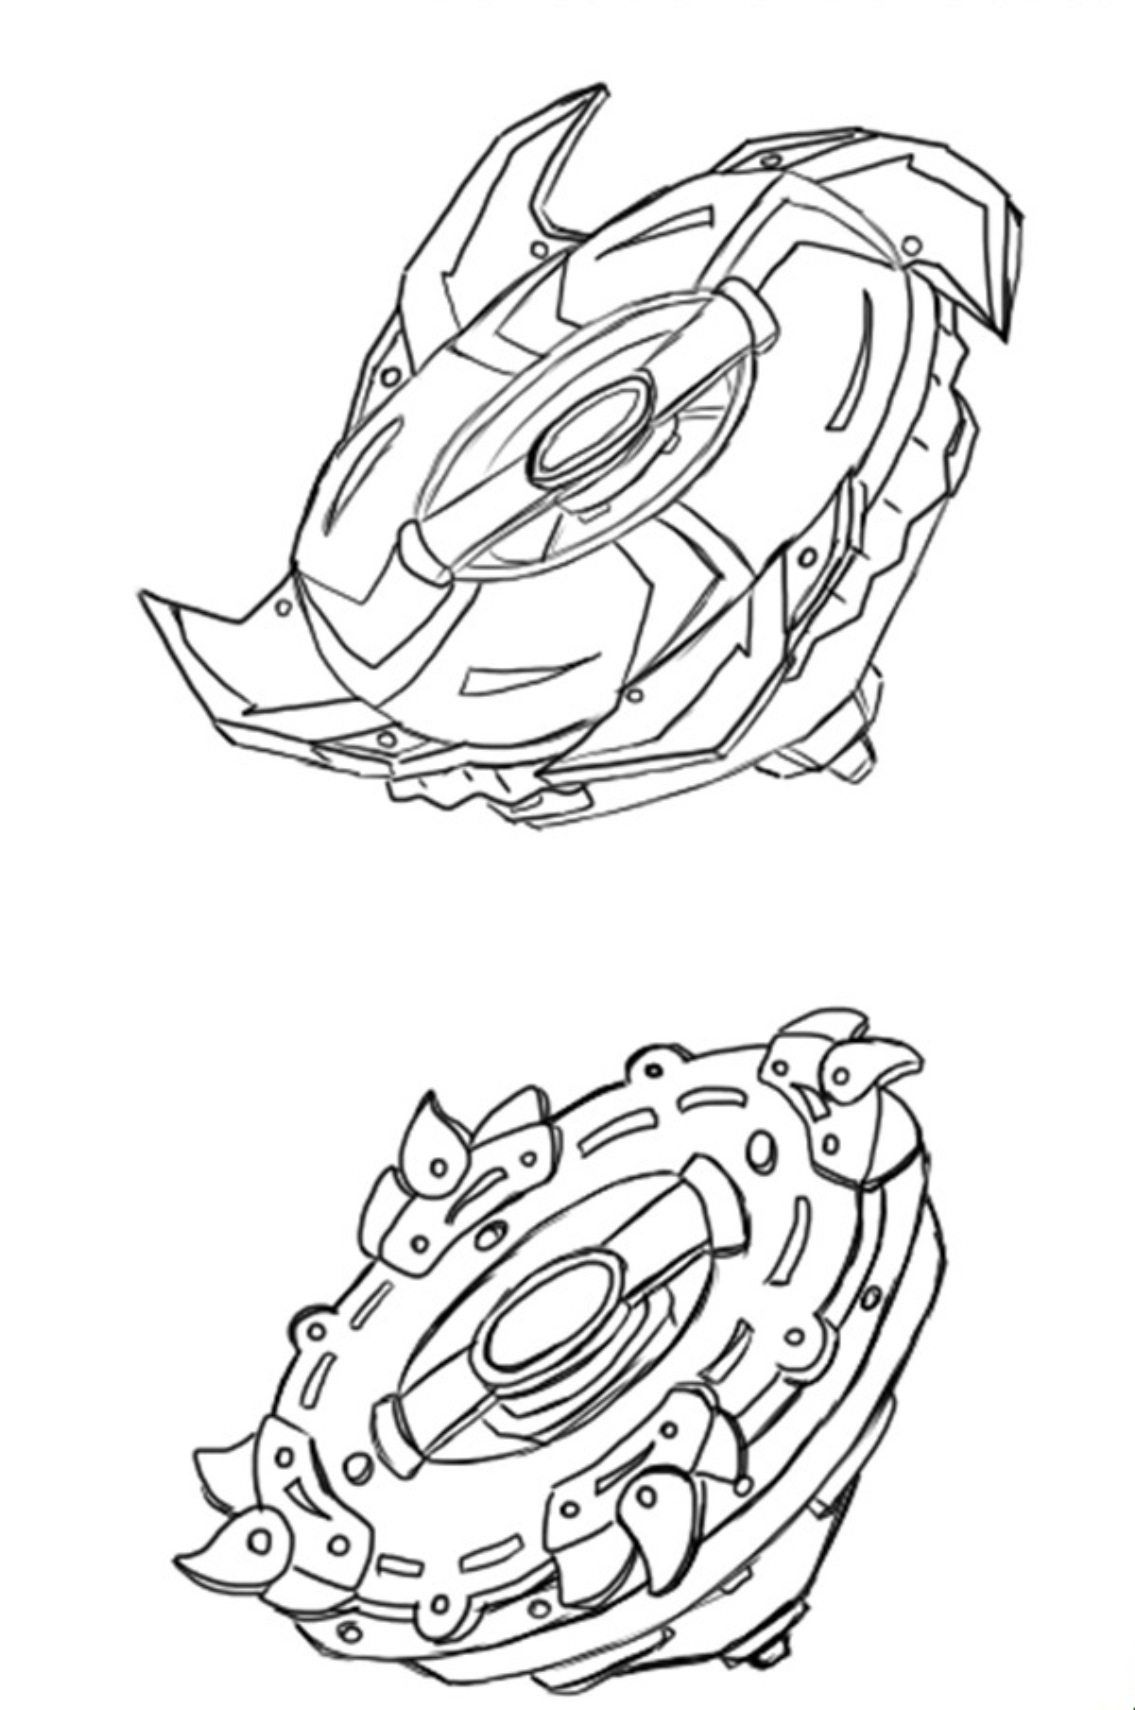 beyblade burst coloring pages xcalius free printable beyblade coloring pages for kids cool2bkids beyblade coloring pages burst xcalius